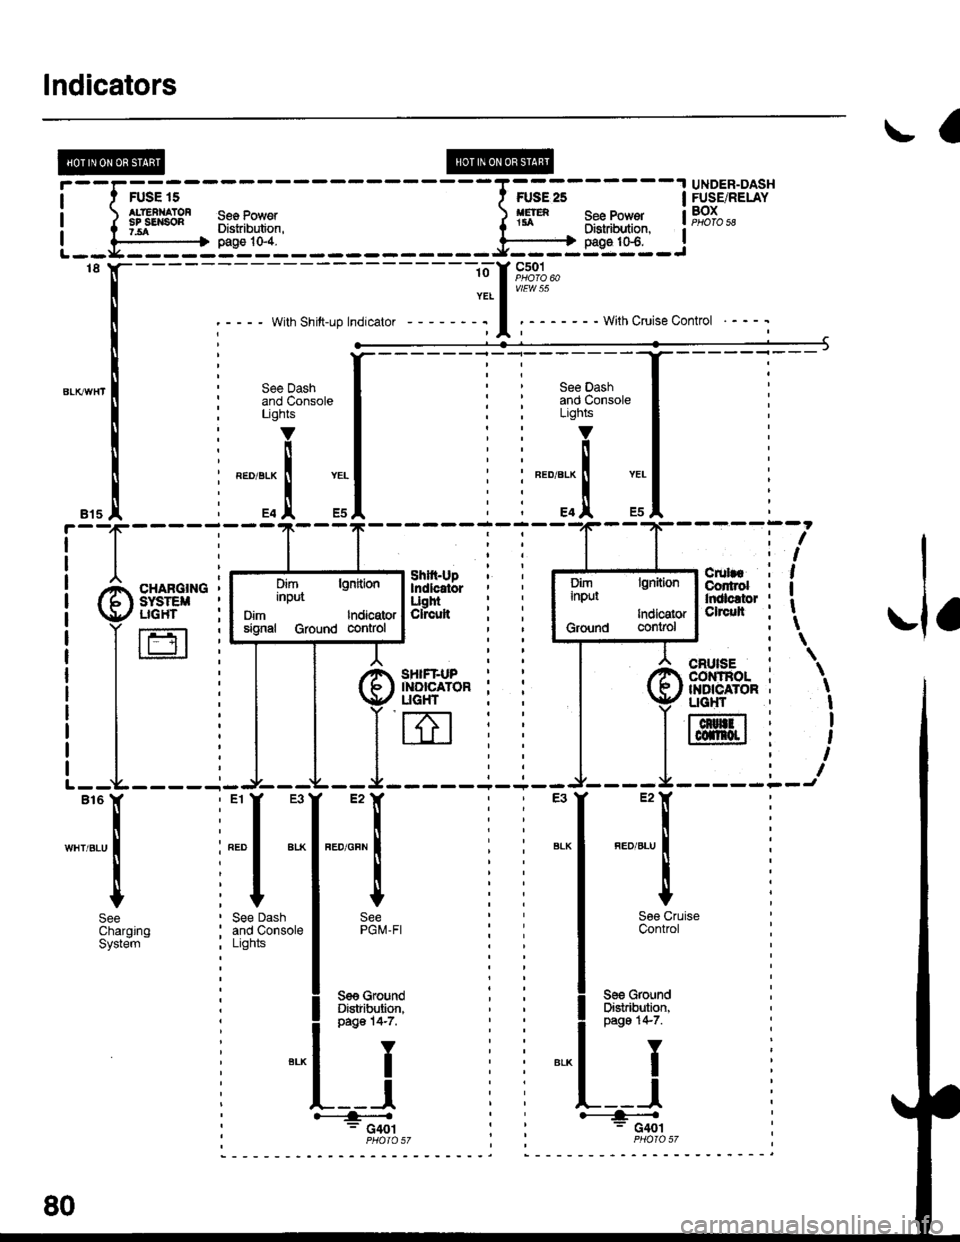 1996 G20 Wiring Diagram Auto Electrical Br2020b100 Related With